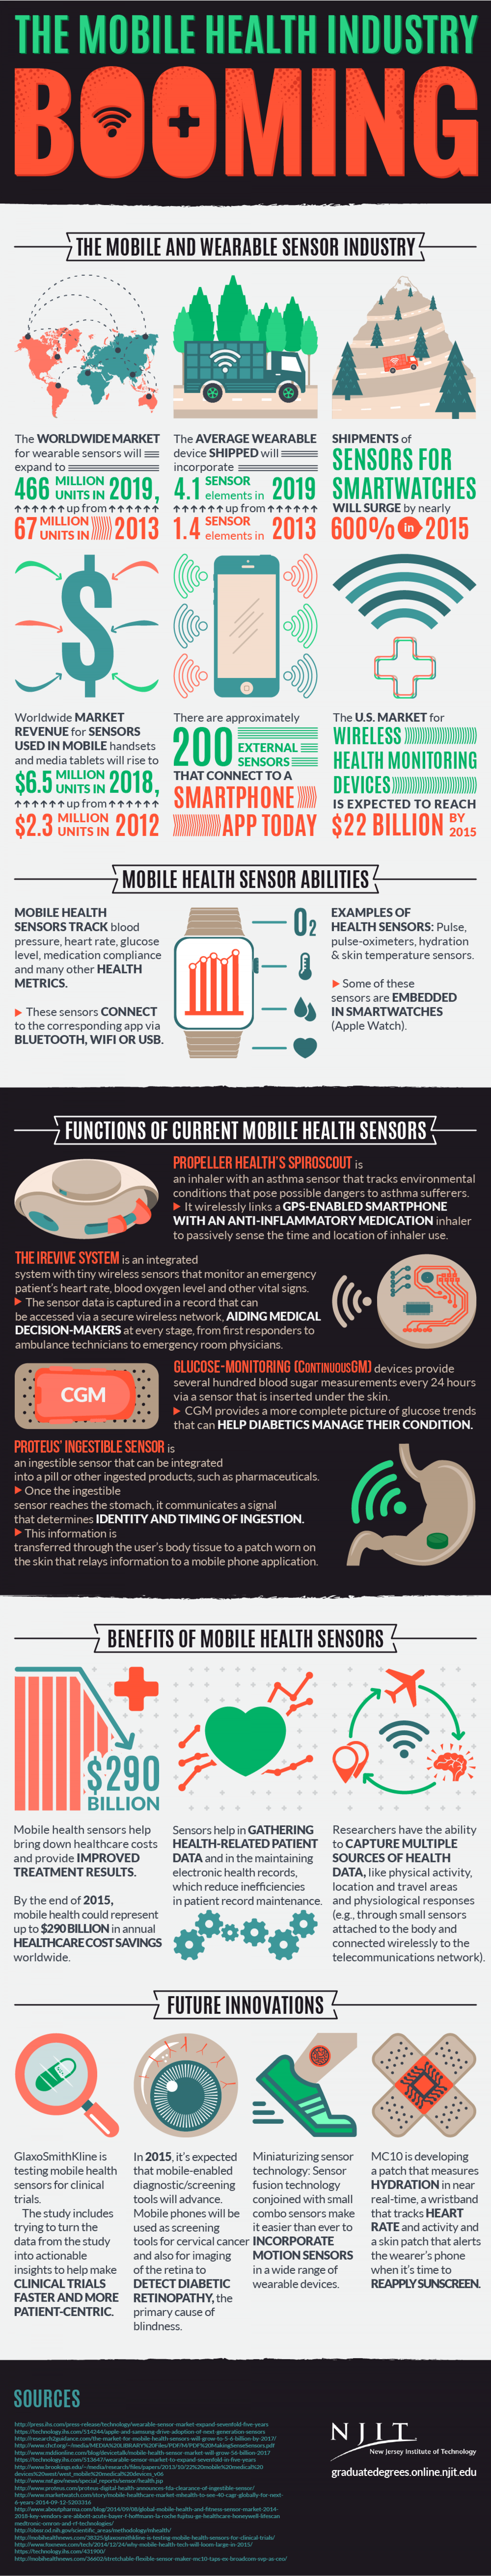 The Mobile Health Industry is Booming Infographic